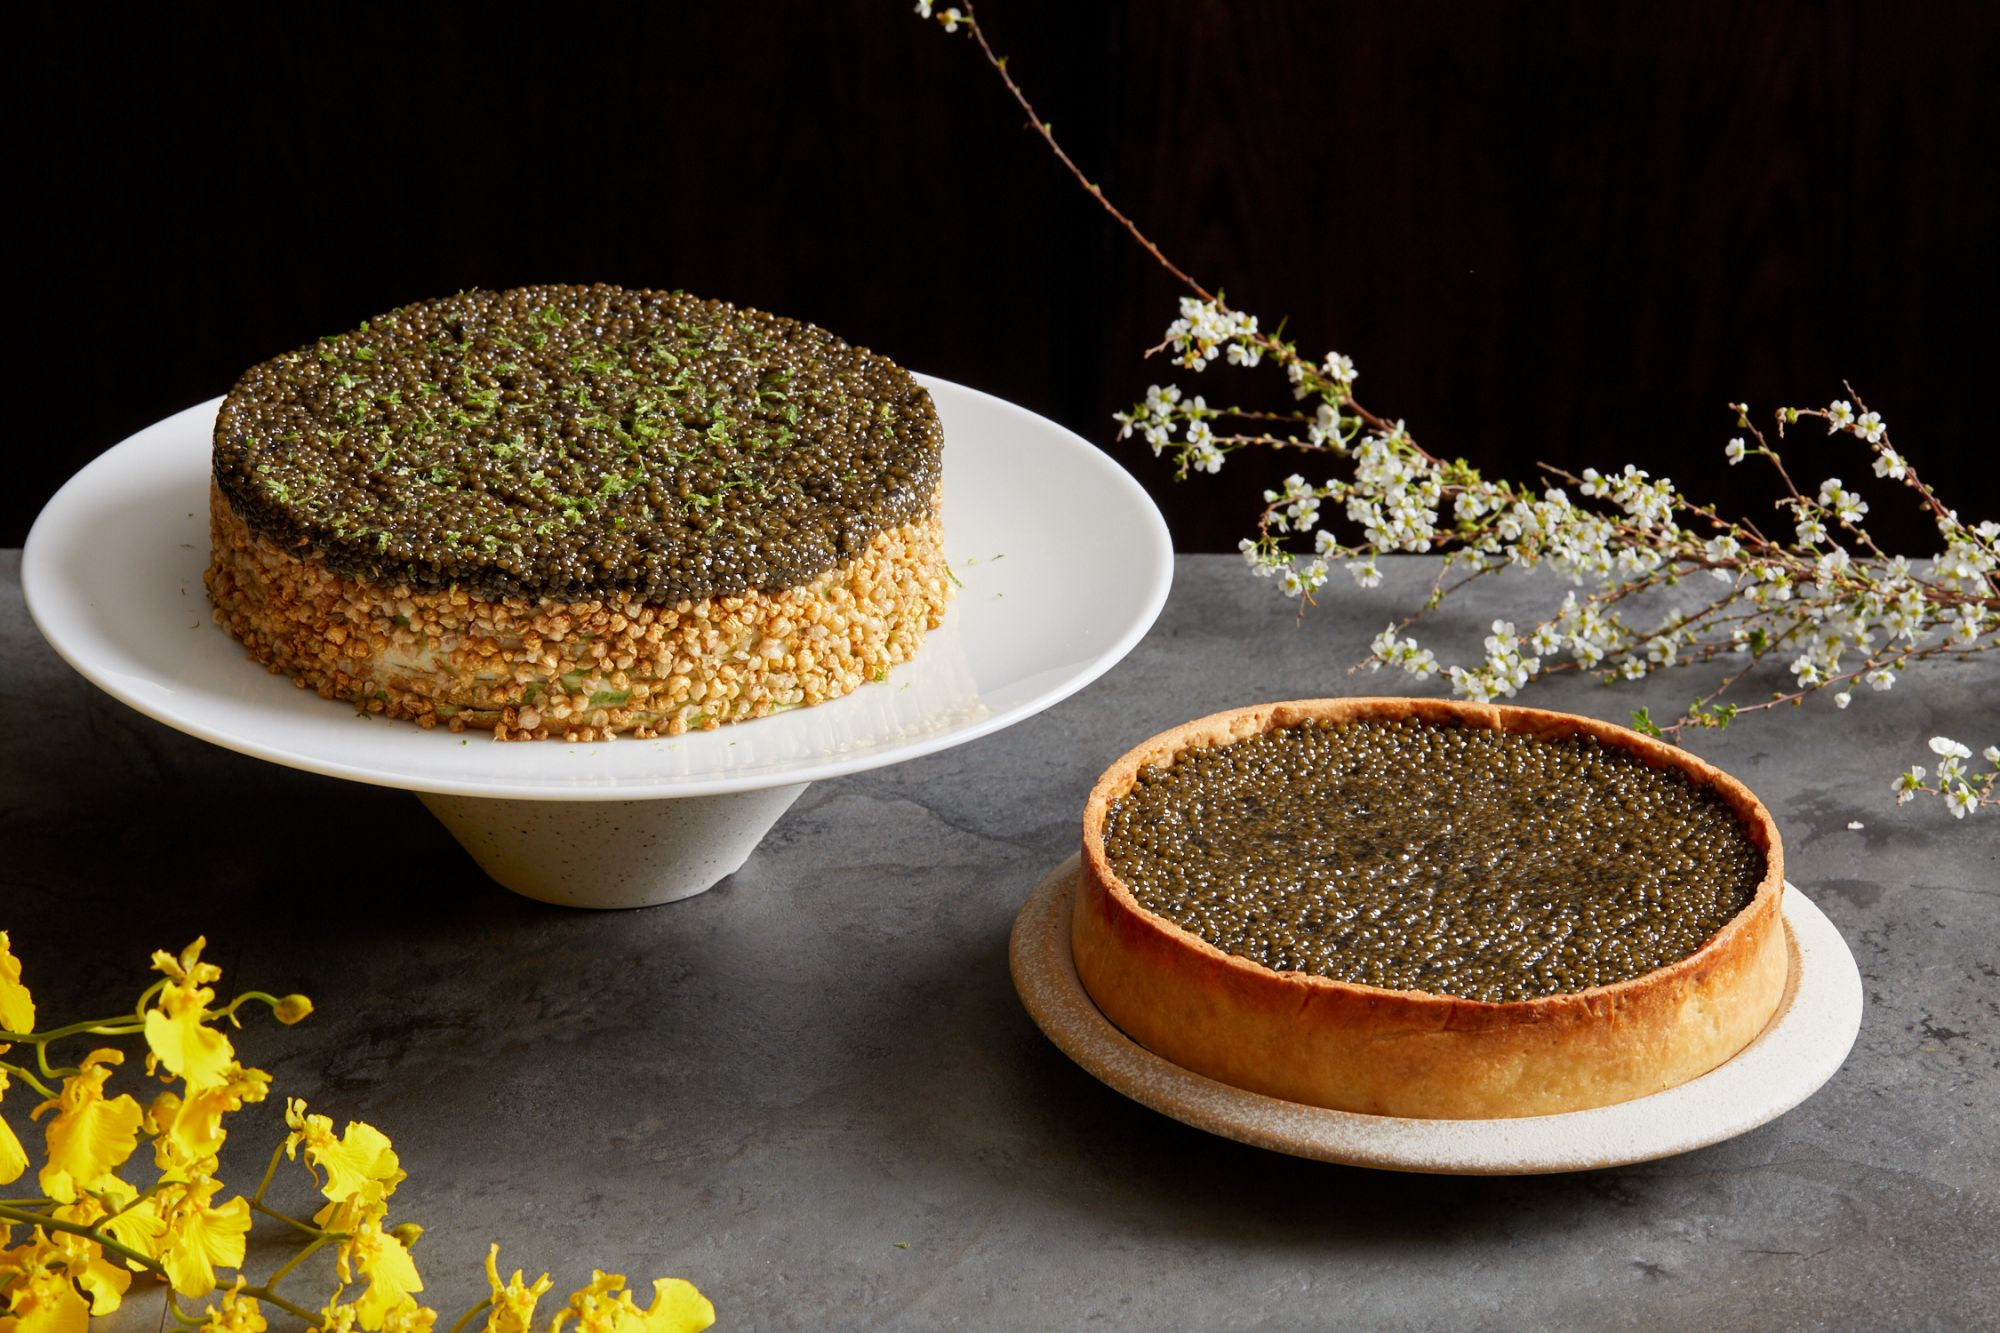 Tatler Unlisted: A Decadent Caviar Cake by Mono and Nomad Caviar